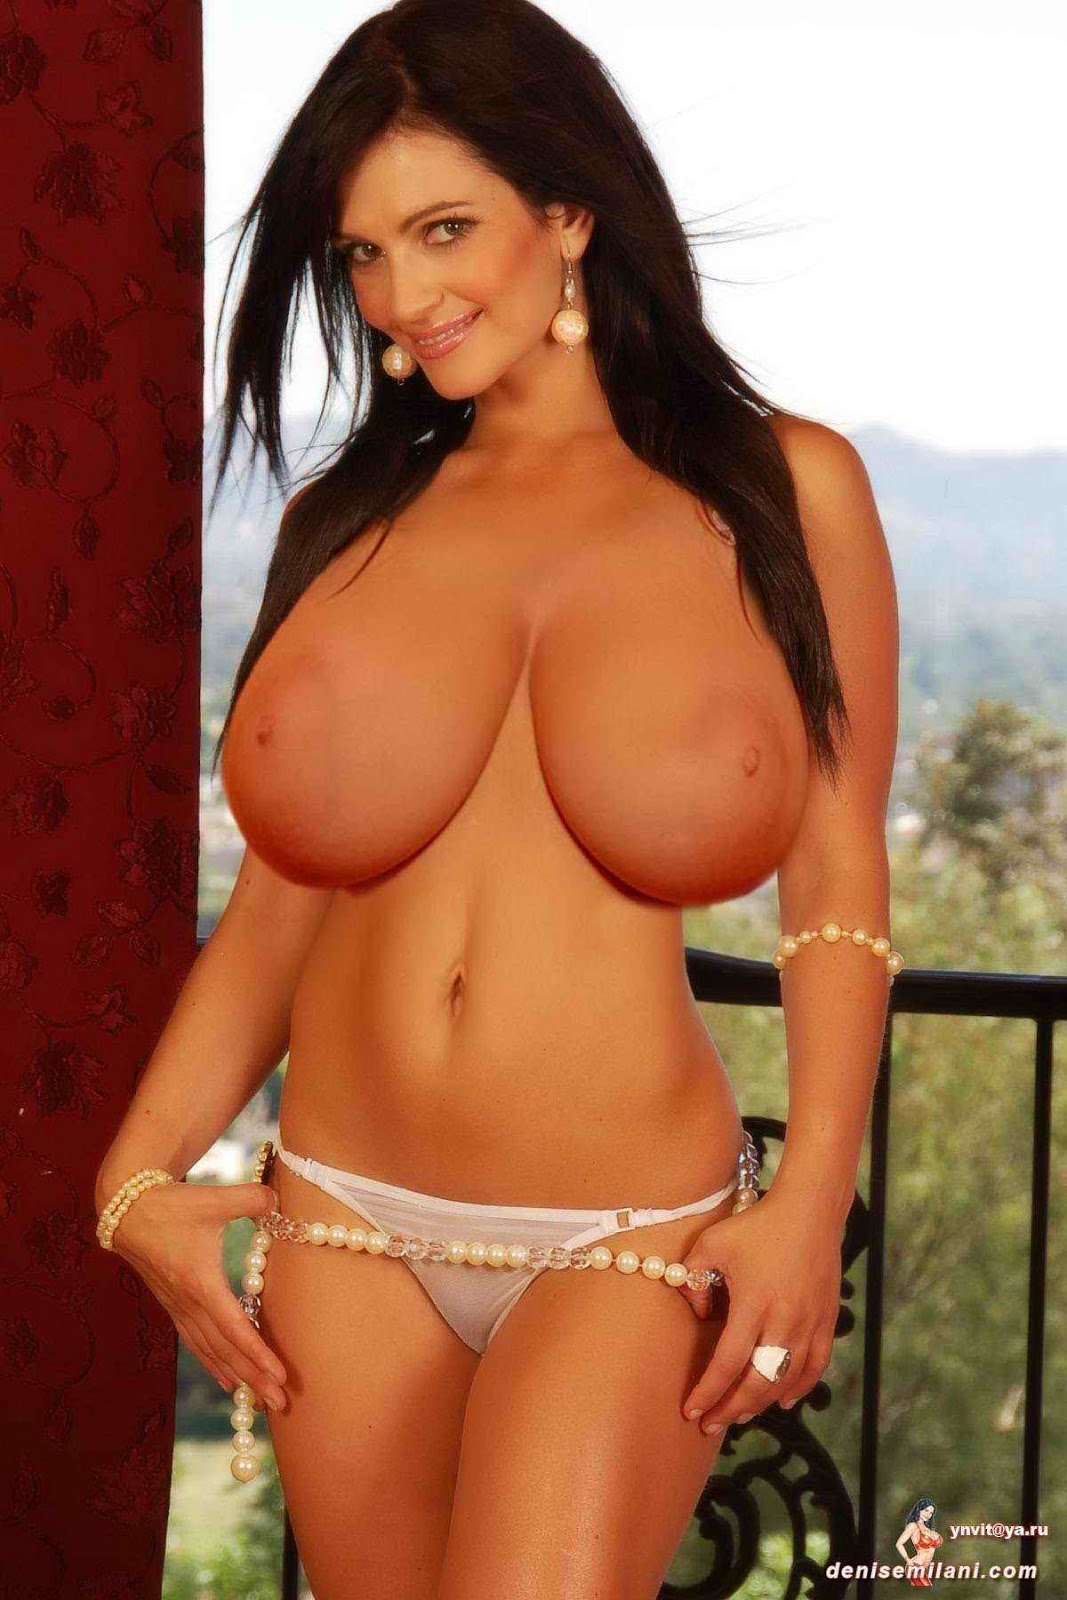 Nude clips of denise milani